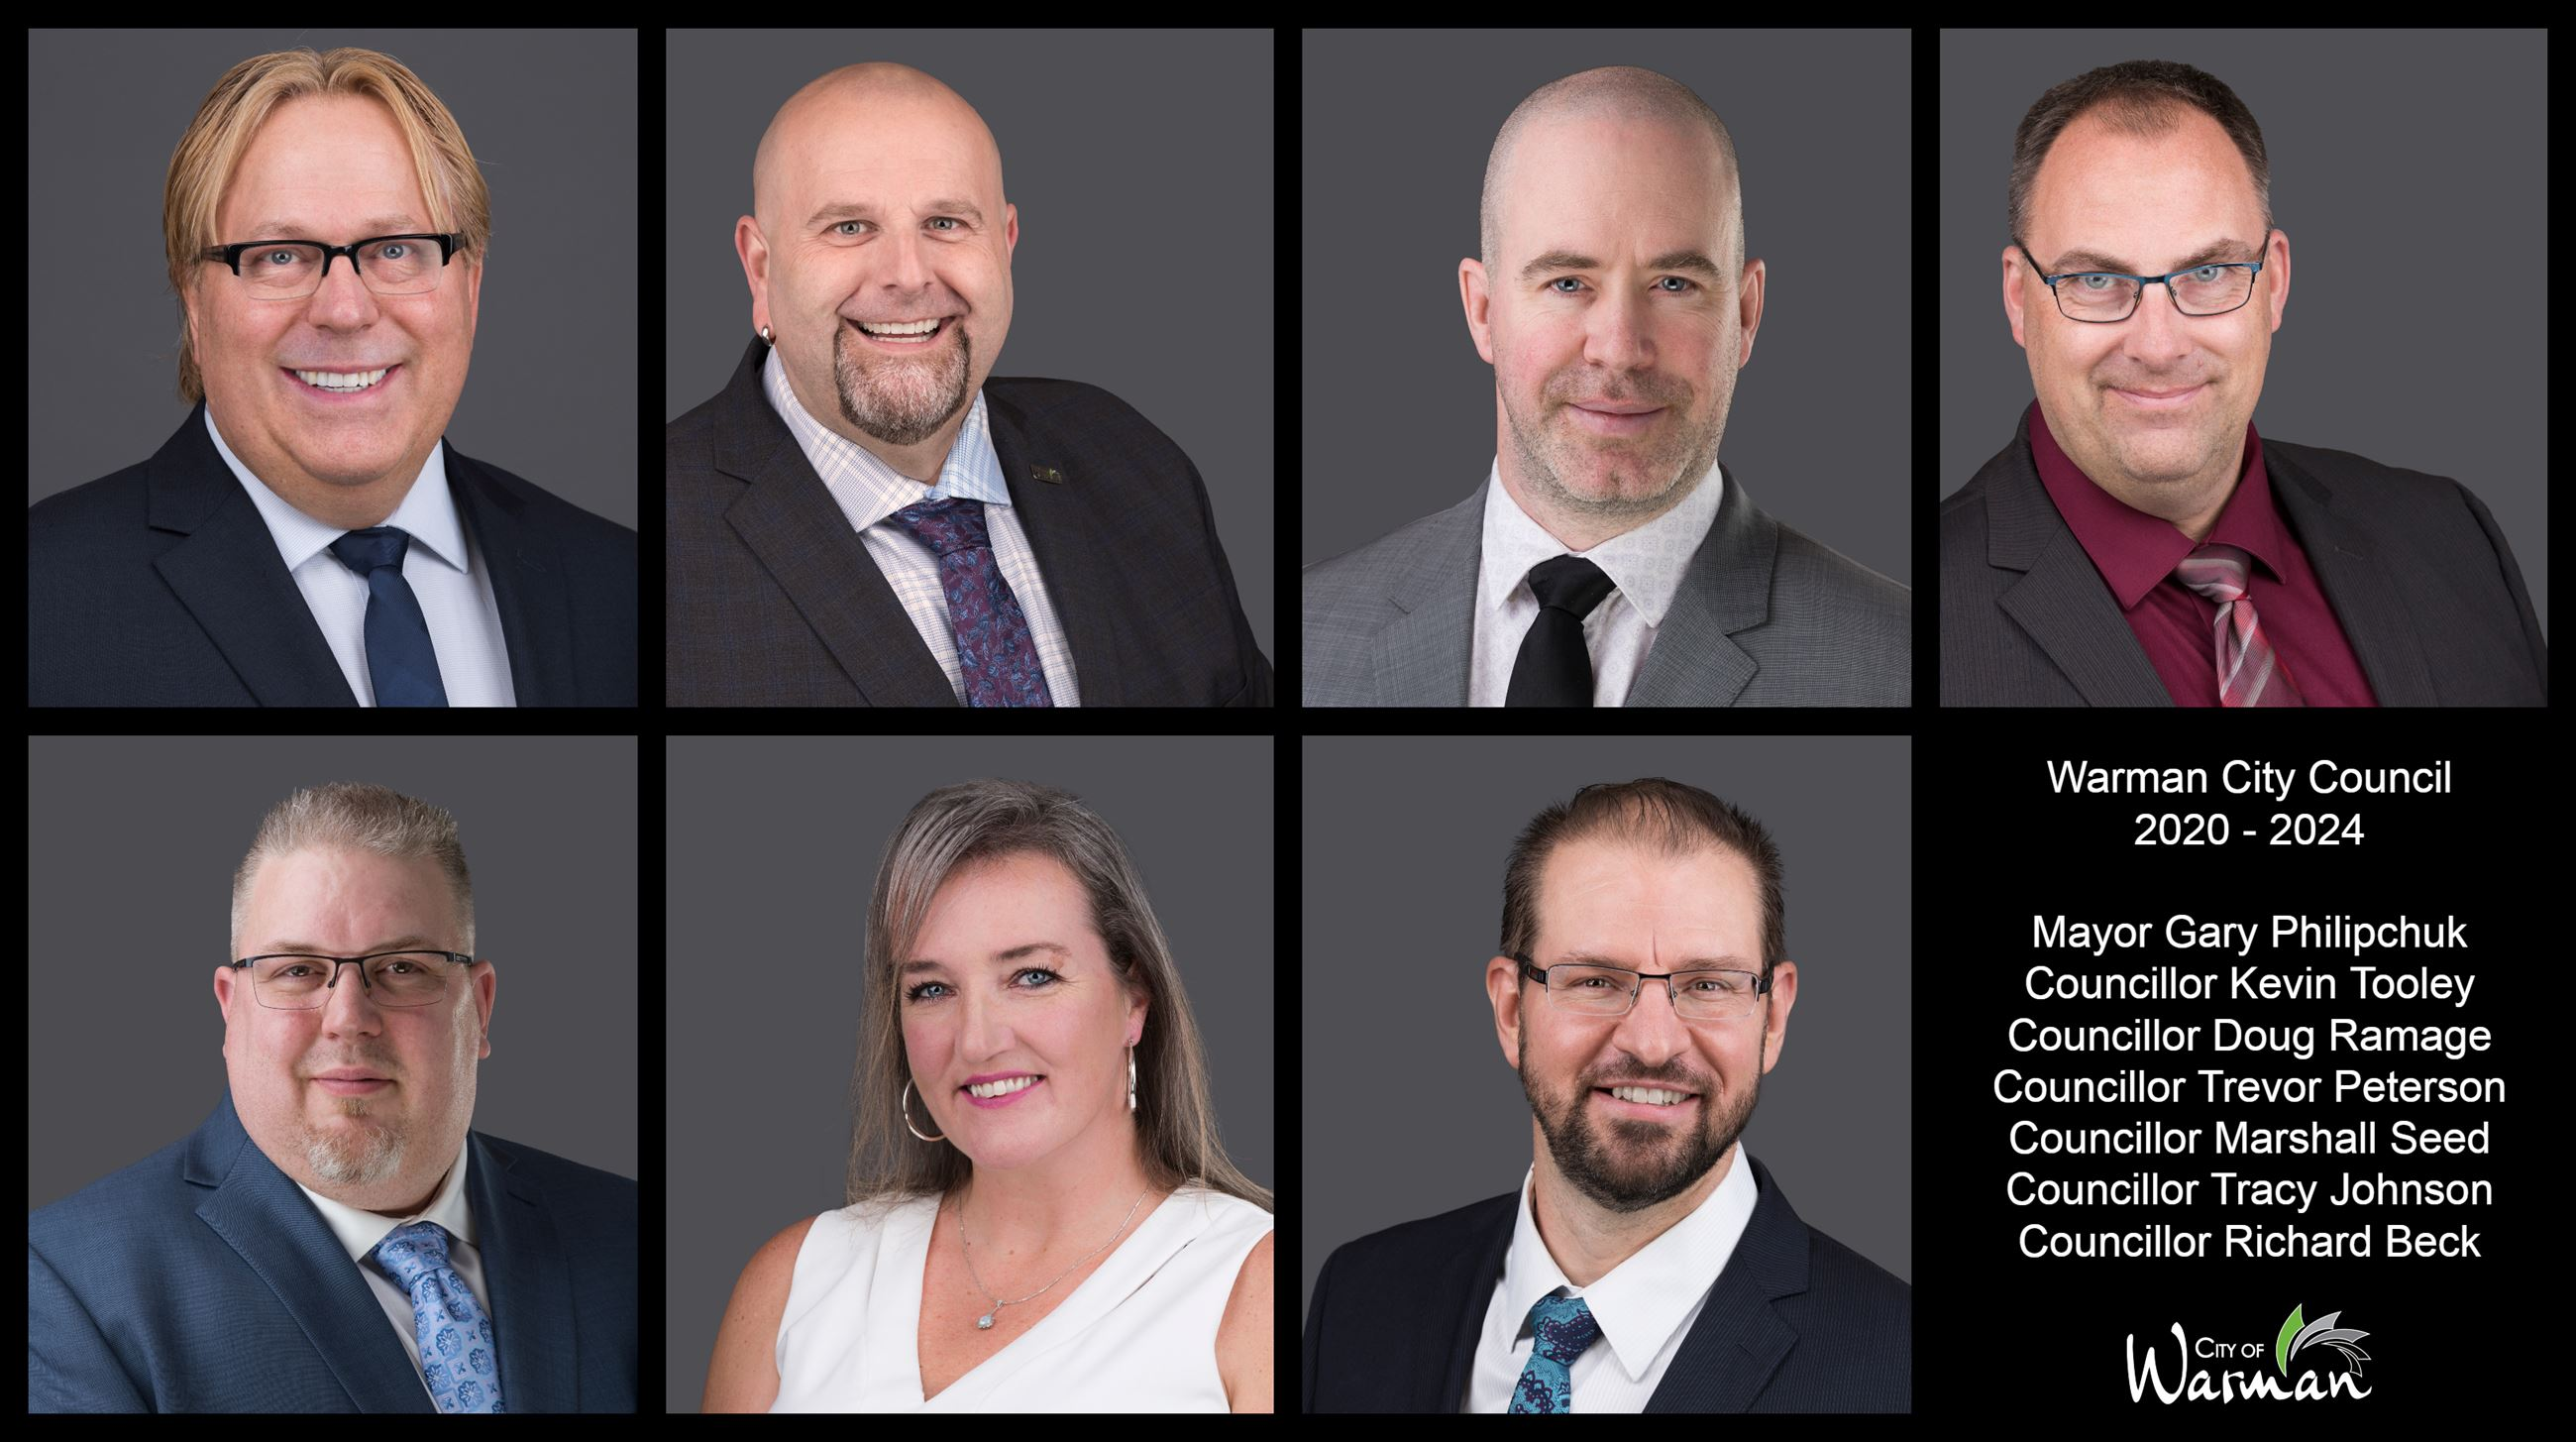 City of Warman Council 2020 to 2024